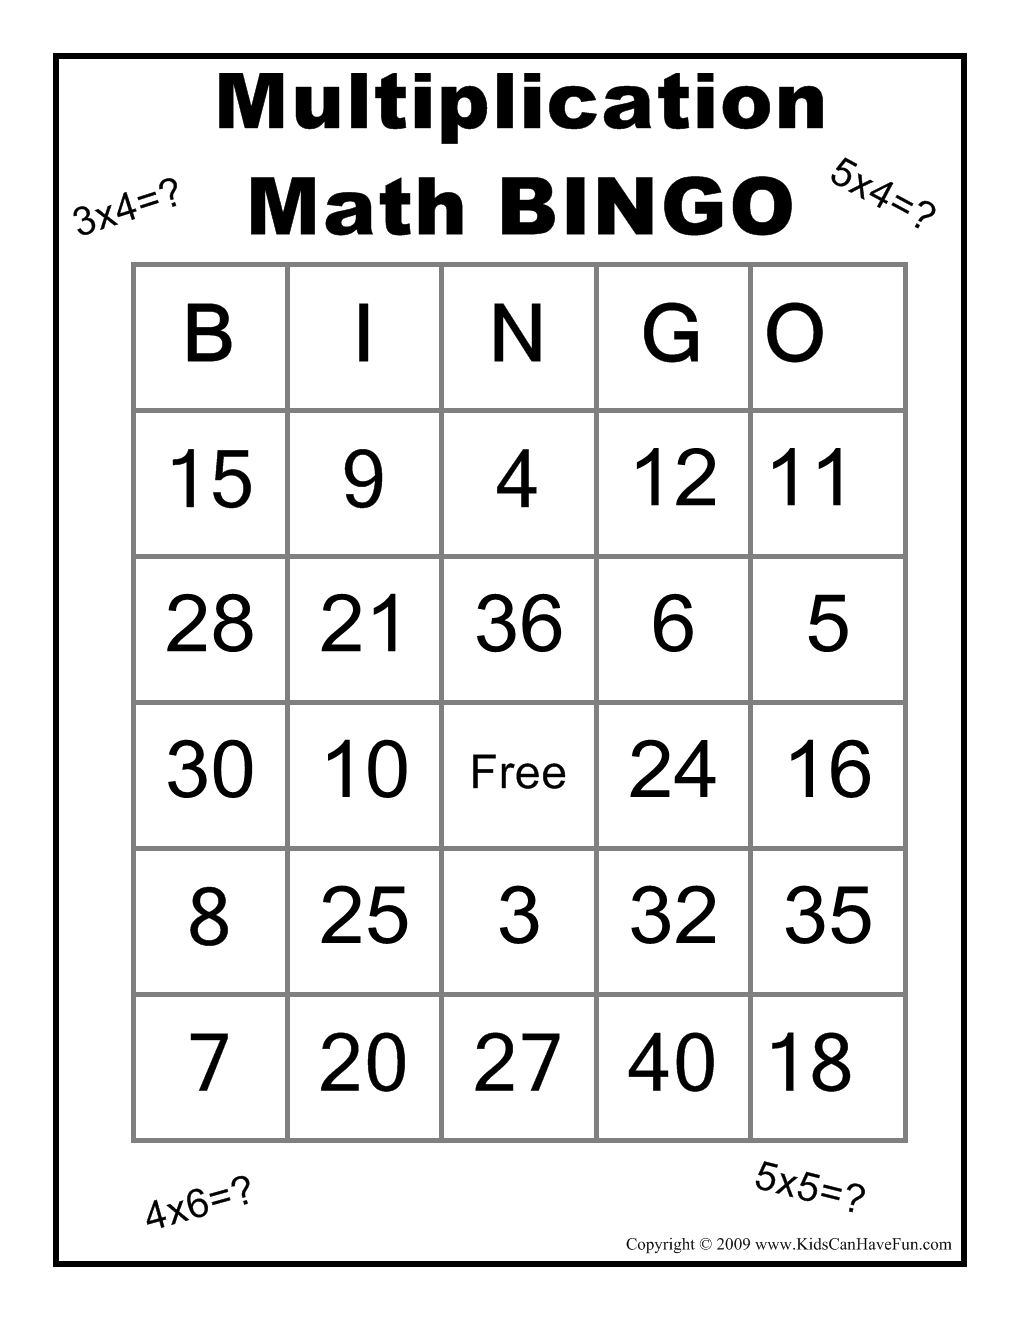 Pincheryl Adams On Math | Math Bingo, Math Classroom, Math - Free Printable Multiplication Bingo